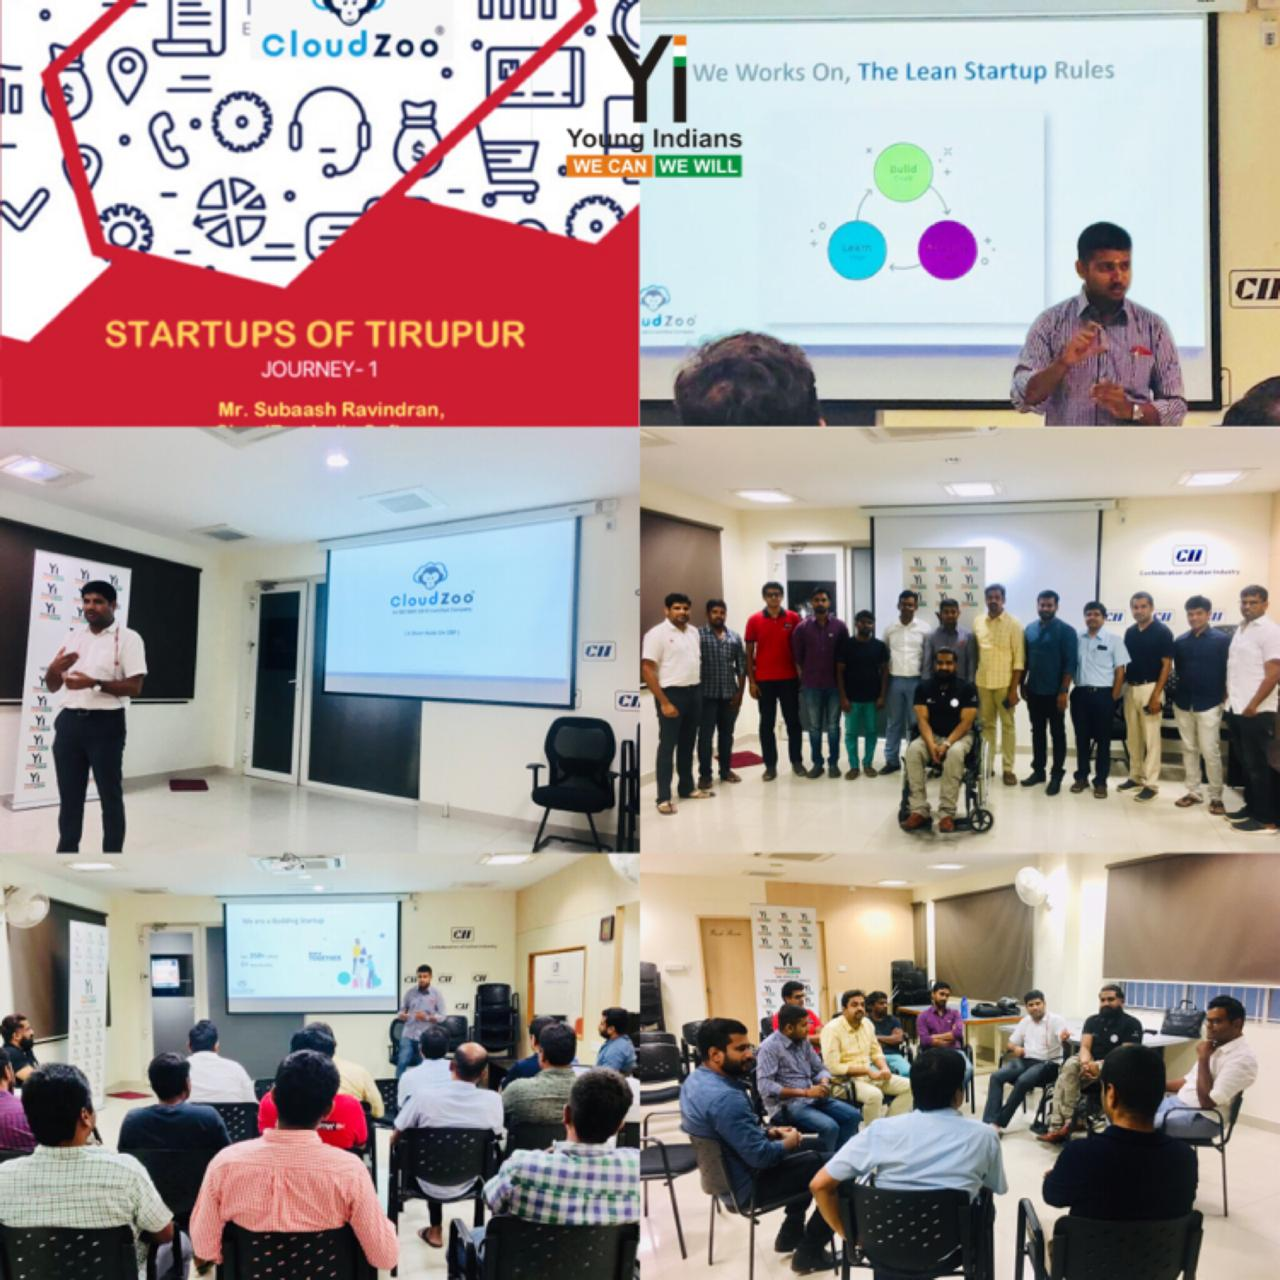 Yi Tiruppur Session on Startups Of Tiruppur